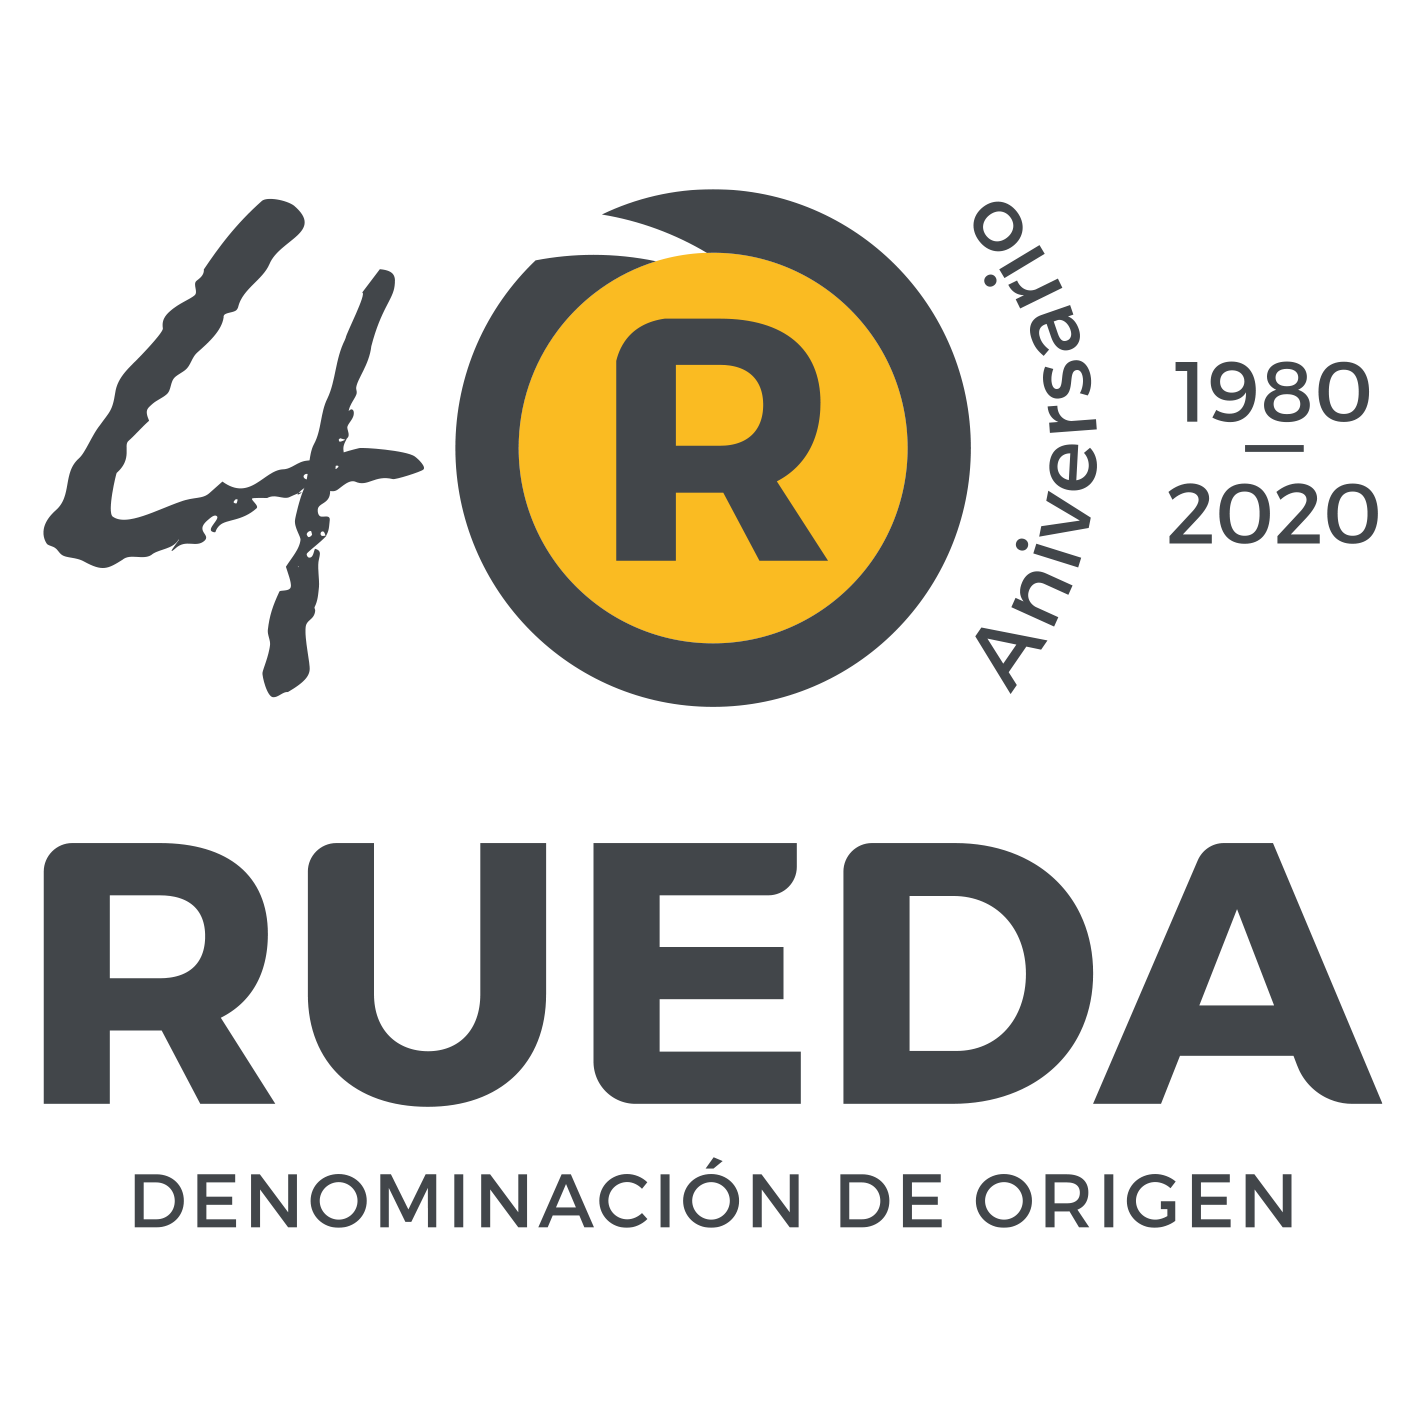 Vinos D.O. Rueda